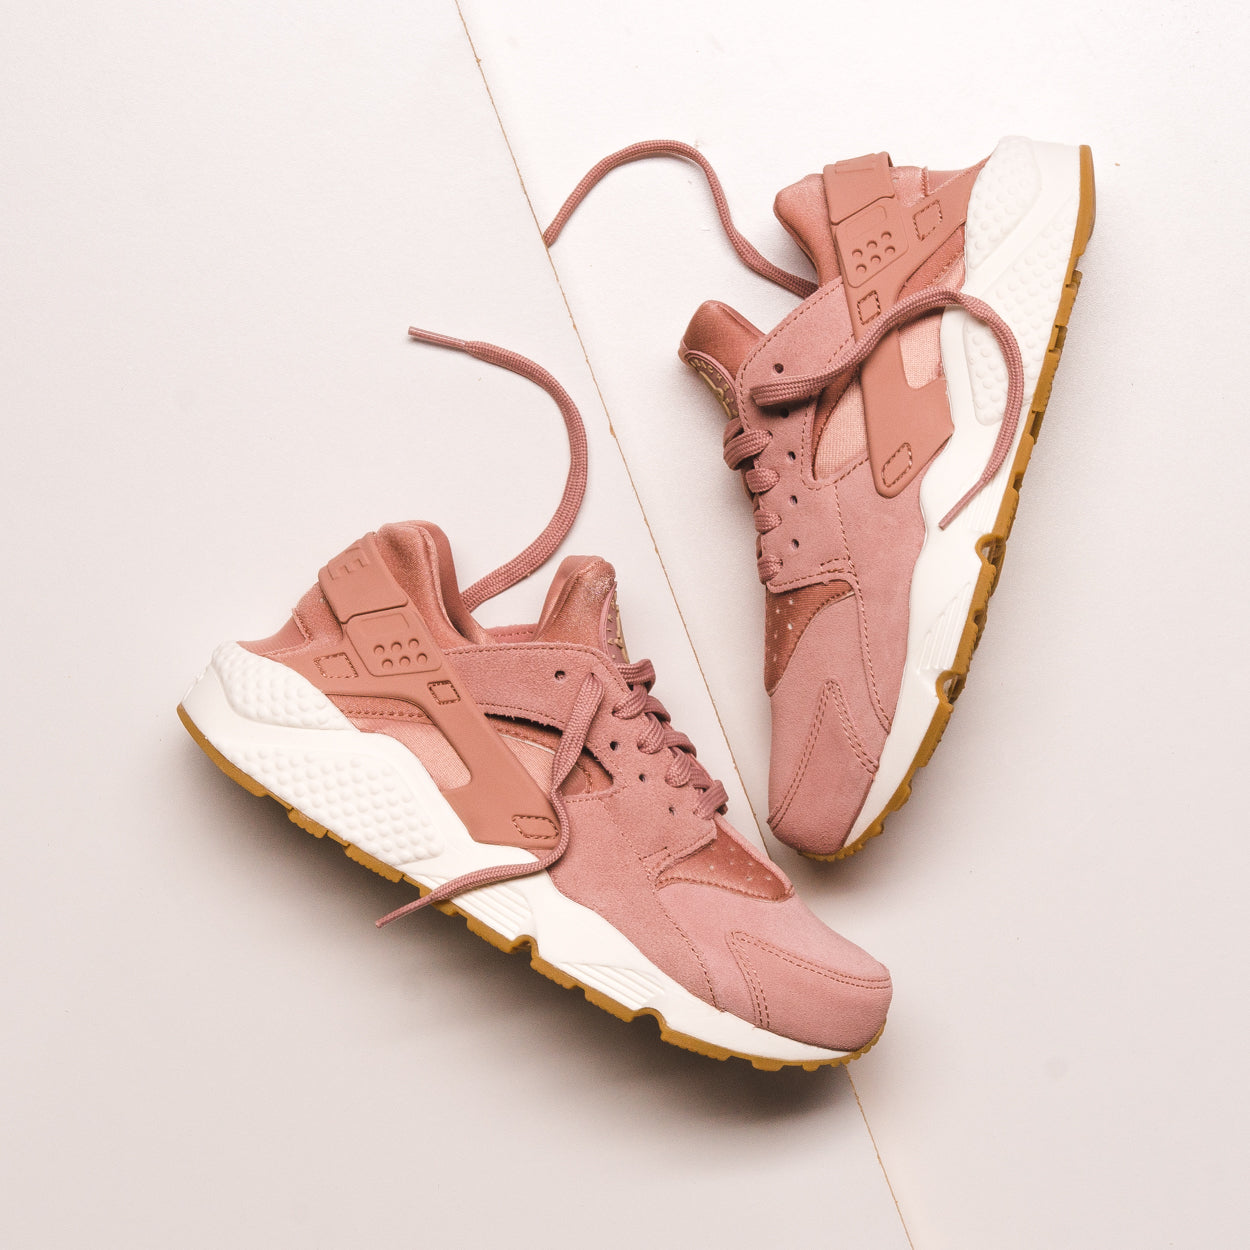 WMNS AIR HUARACHE RUN SD PARTICLE PINK